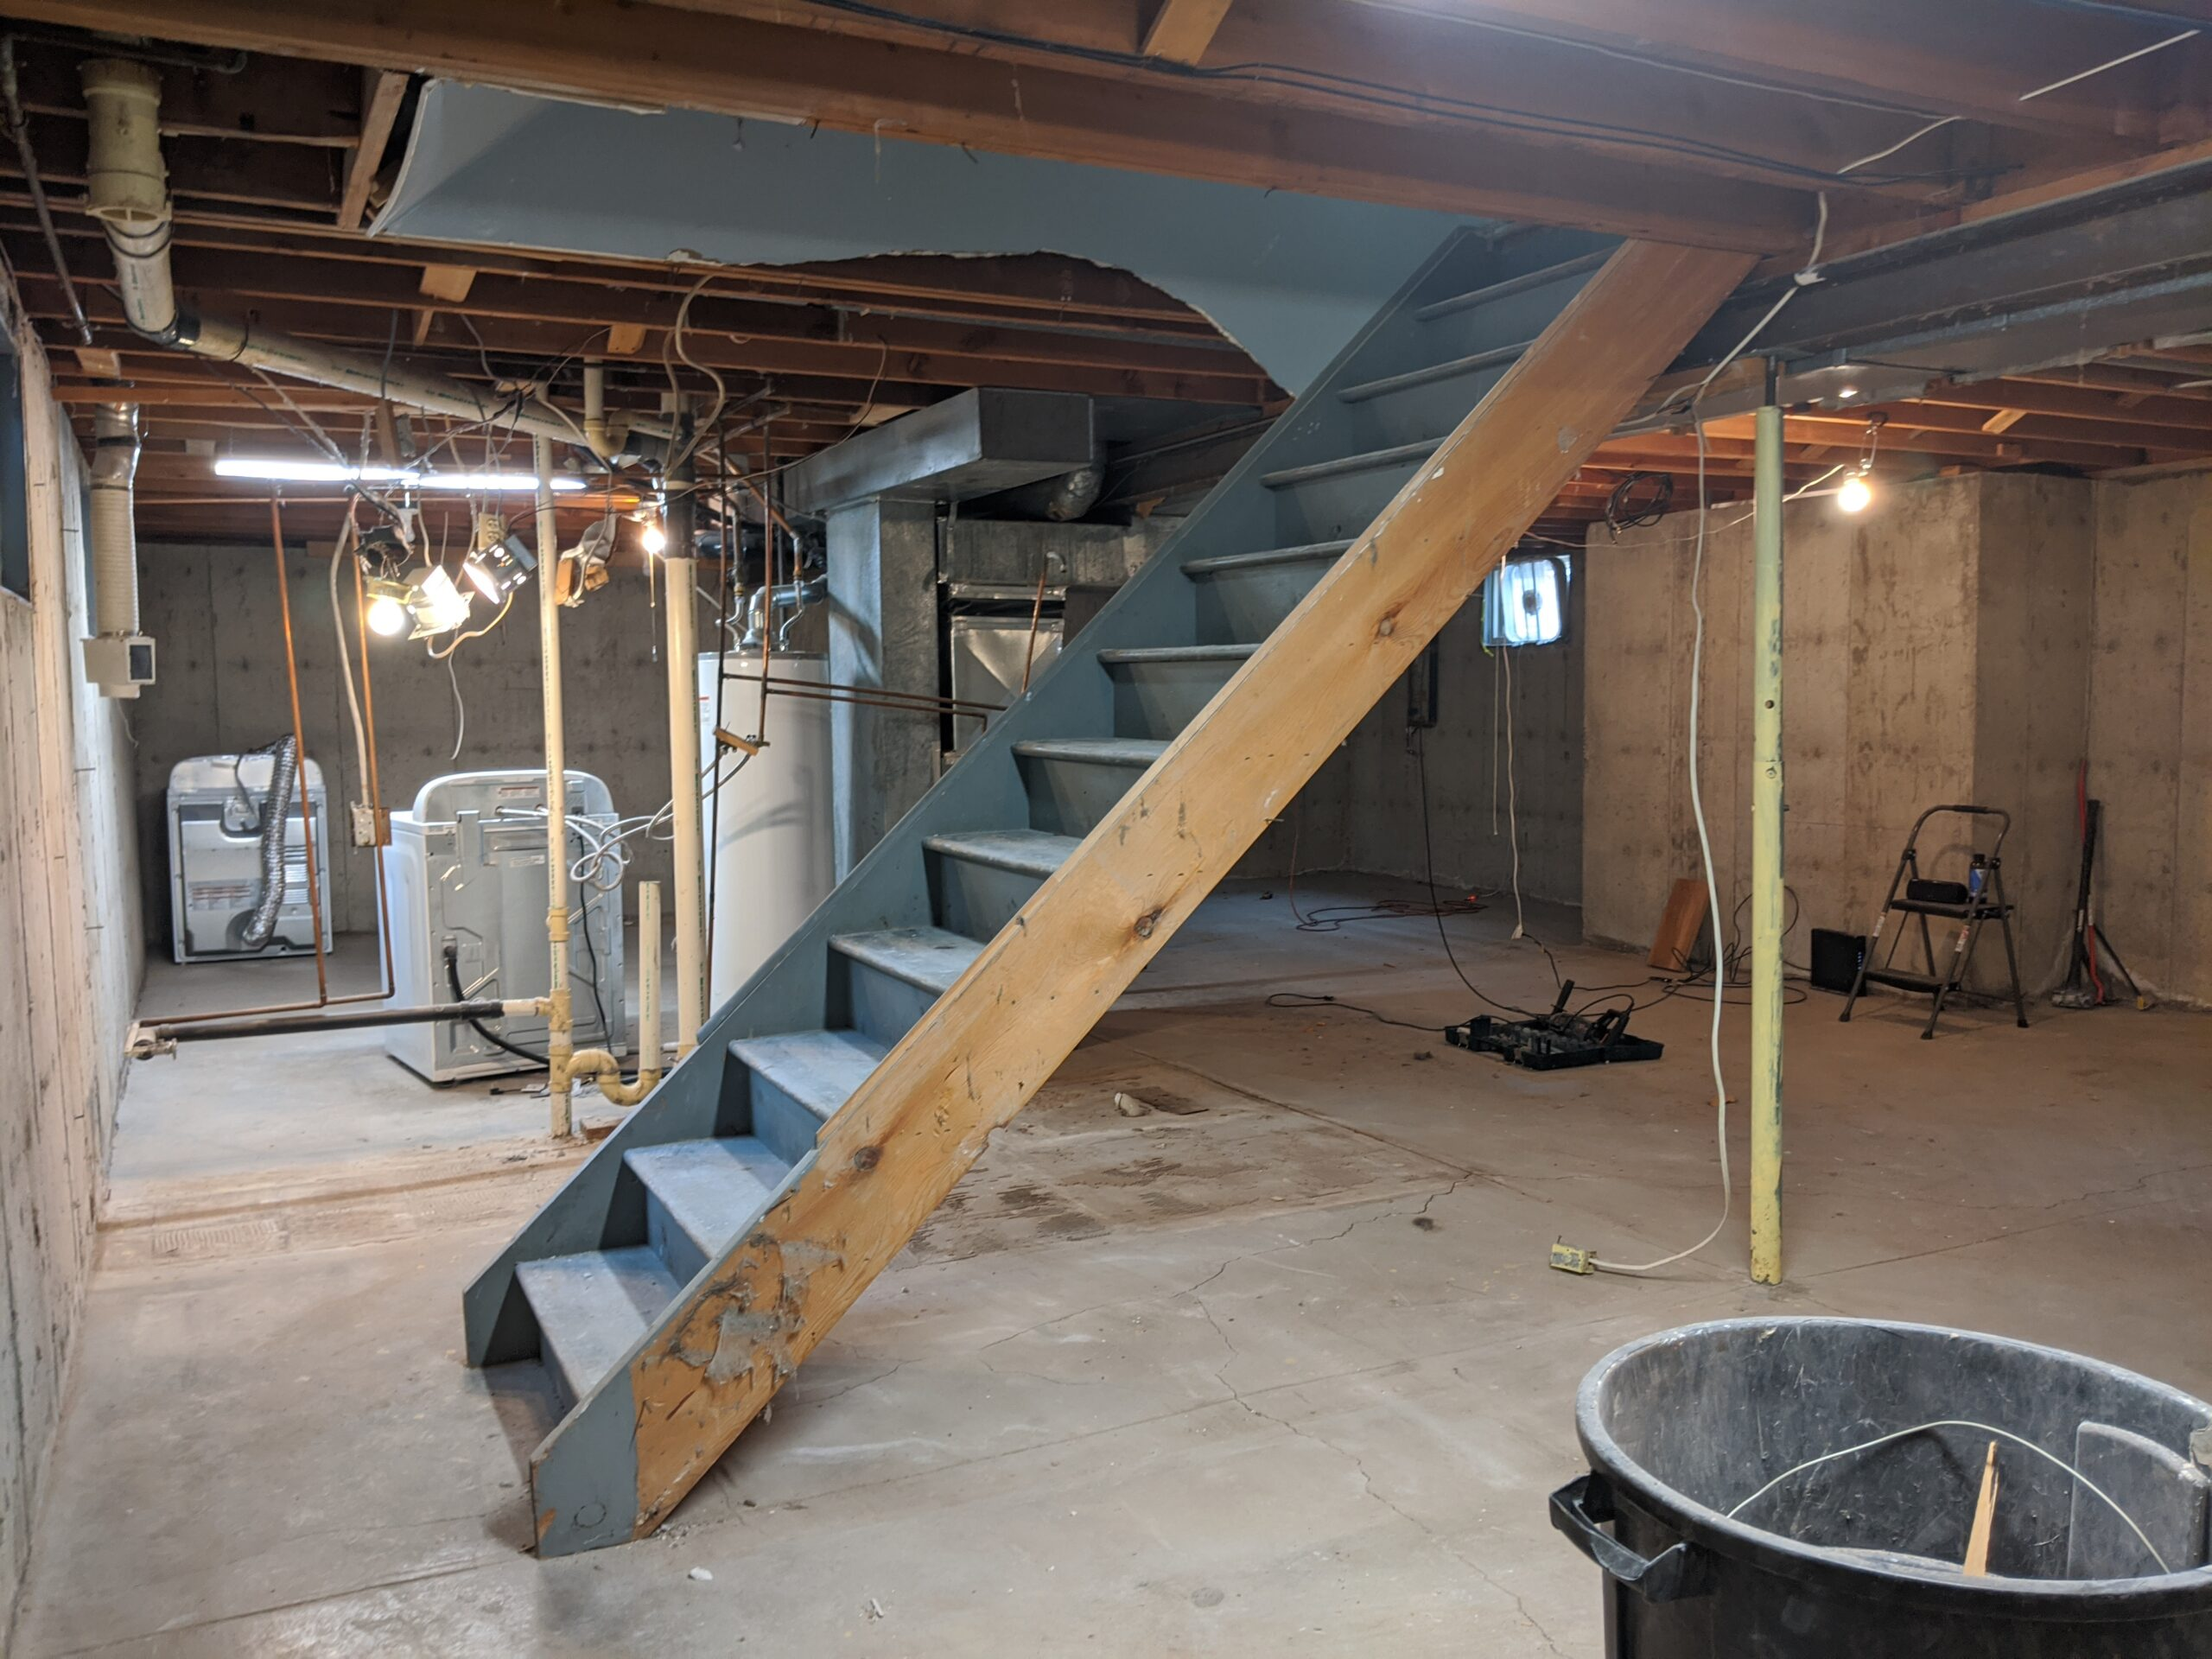 Moving the Stairs Maximized Our Space